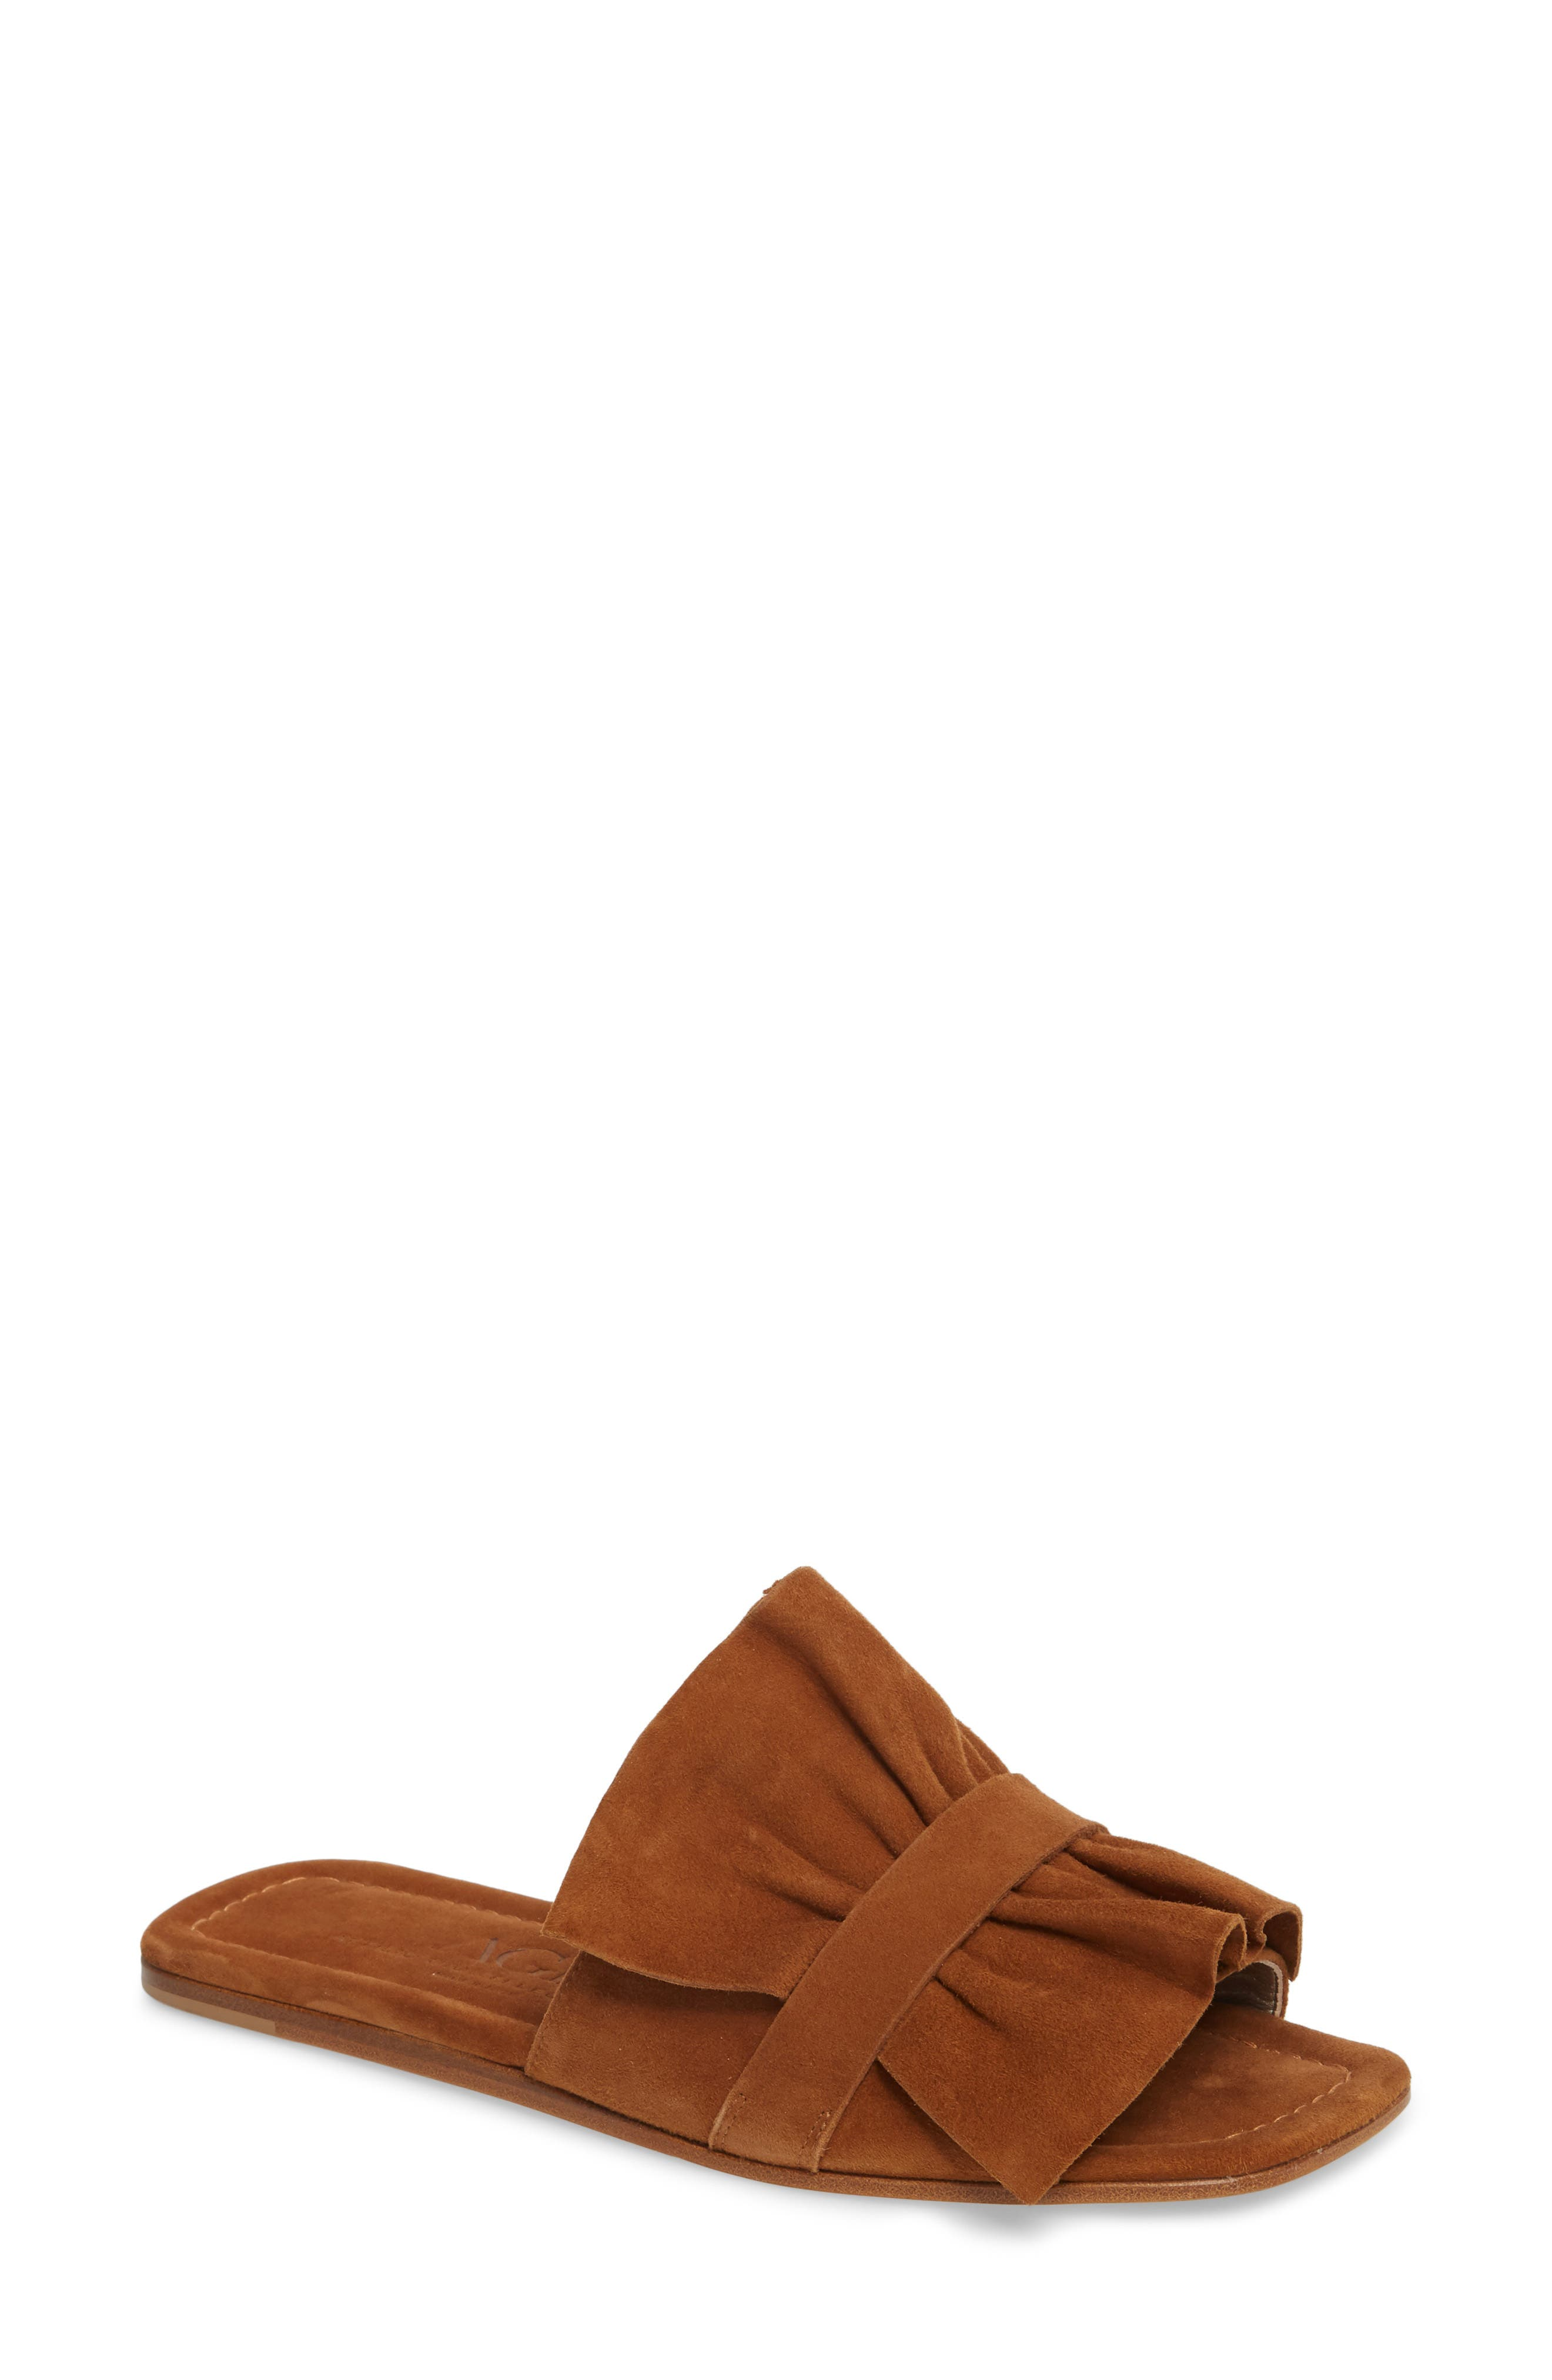 Ruched Slide Sandal,                         Main,                         color, 245